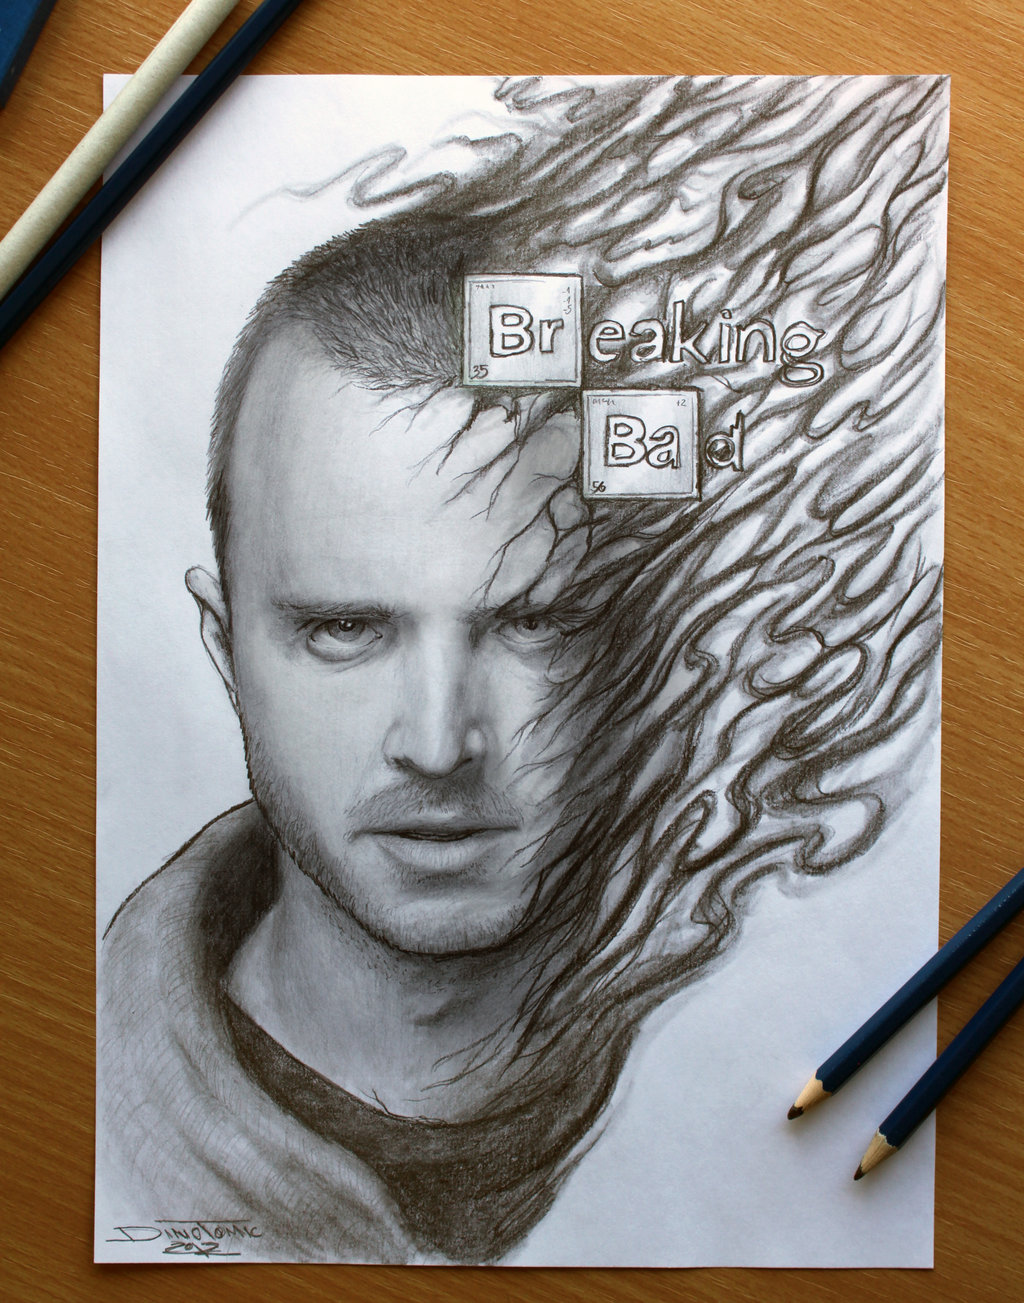 breaking_bad___jesse_pinkman_by_atomiccircus-d5hqqyb